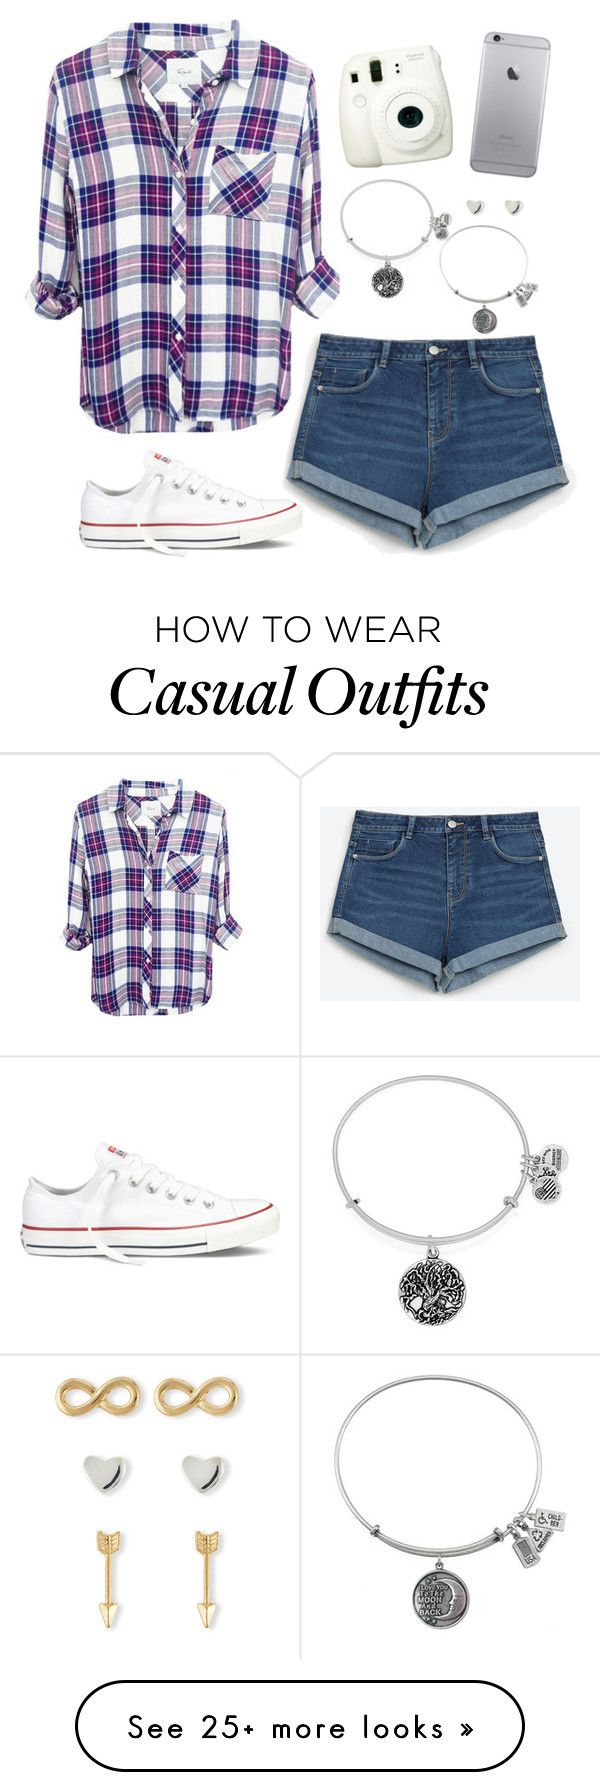 """Casual Outfit"" by twaayy on Polyvore featuring Zara, Converse, Fuji, Alex and Ani and Jules Smith"